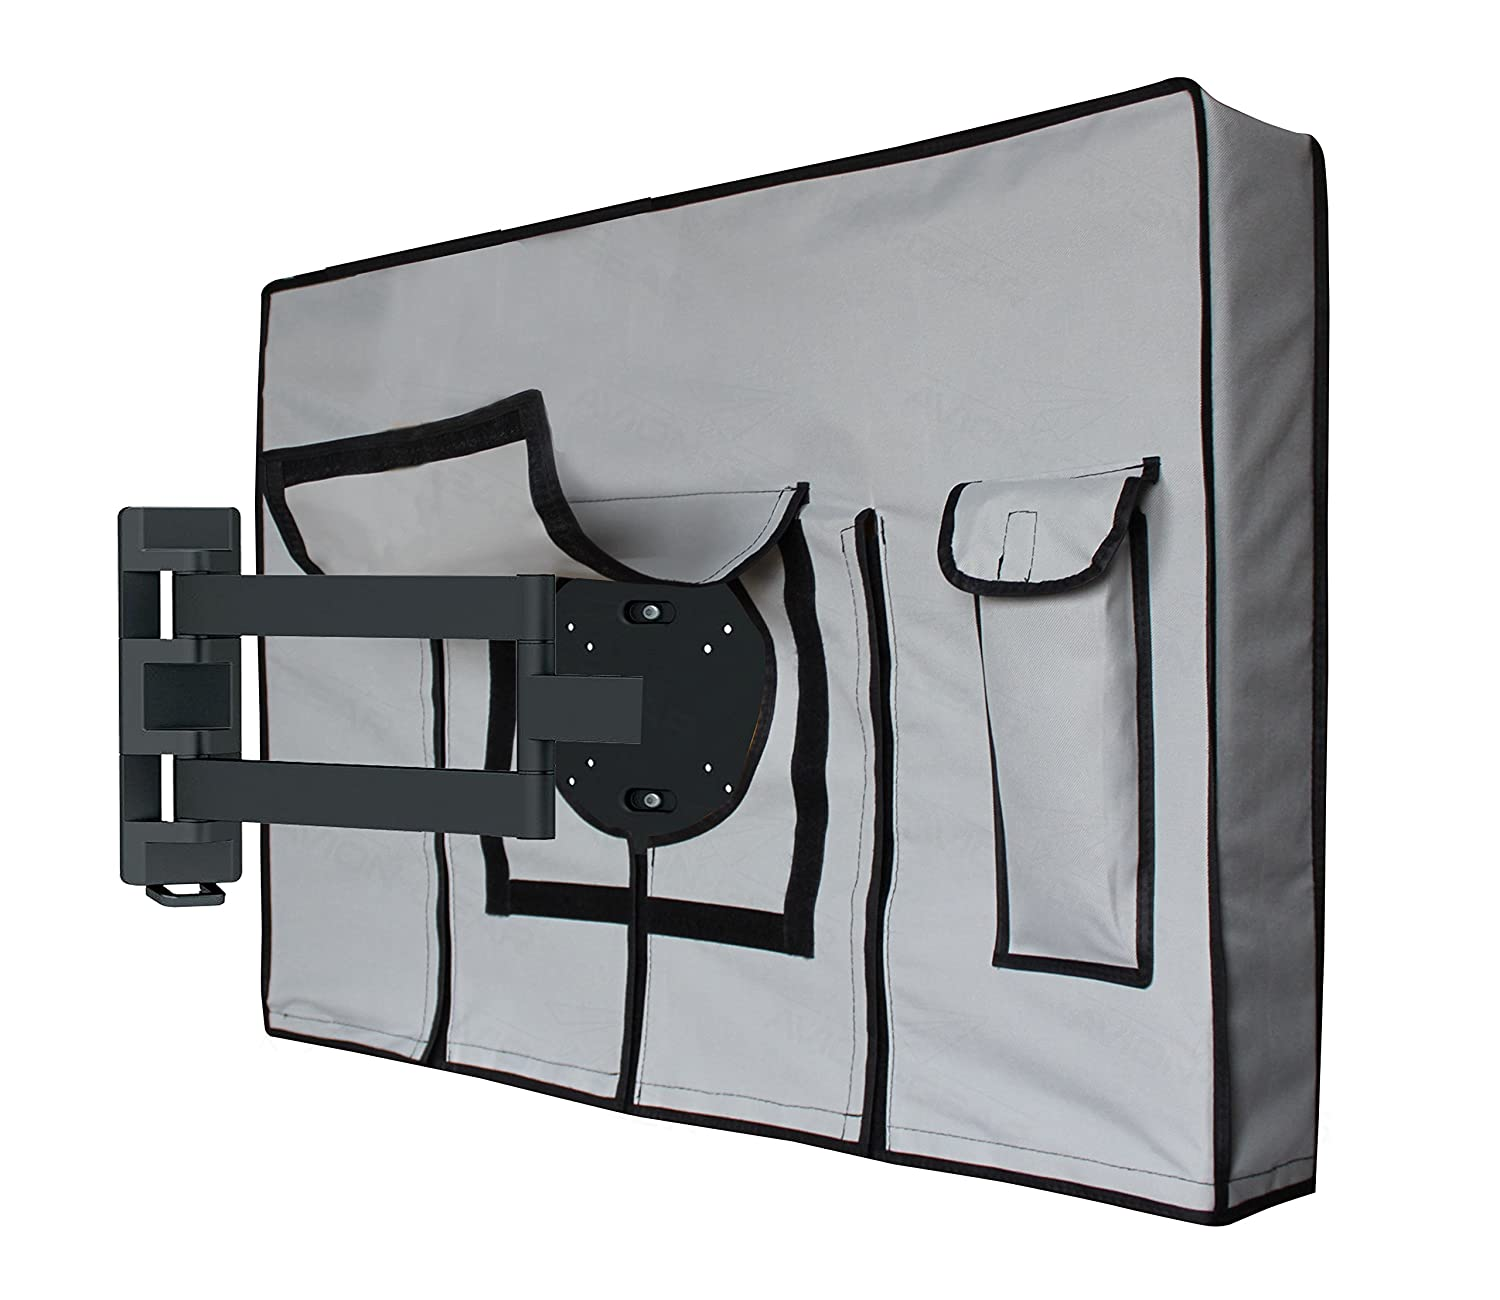 "Outdoor TV Cover - 30' 32"" Weatherproof Universal Protector for LED, LCD, Plasma TV Screens. Built in Fully Covered Bottom & Remote Storage. Fits Standard Mounts and Stands – Grey by: Avion Gear TV-033032"